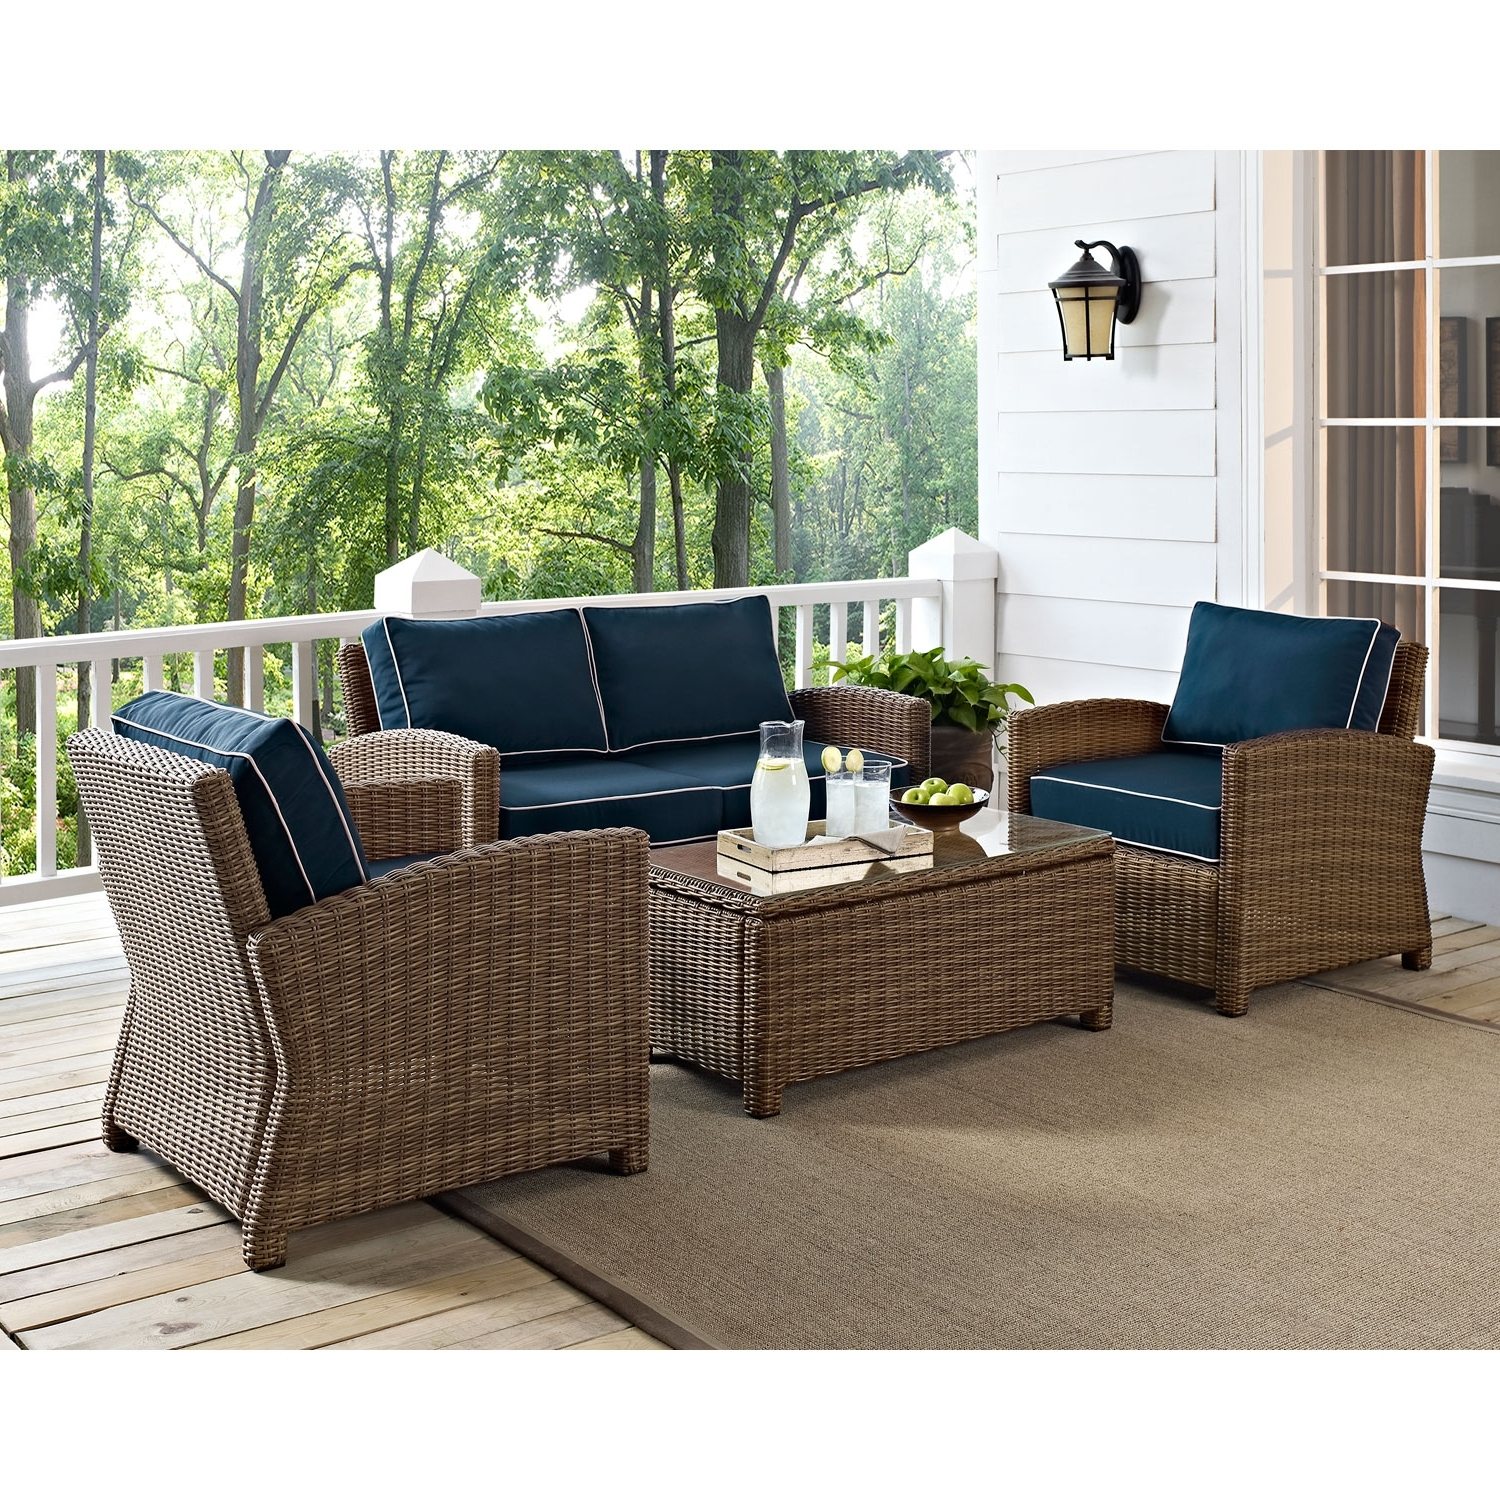 Fashionable Patio Conversation Sets Without Cushions Intended For Crosley Furniture Bradenton 4 Piece Outdoor Wicker Seating Set With (View 7 of 20)